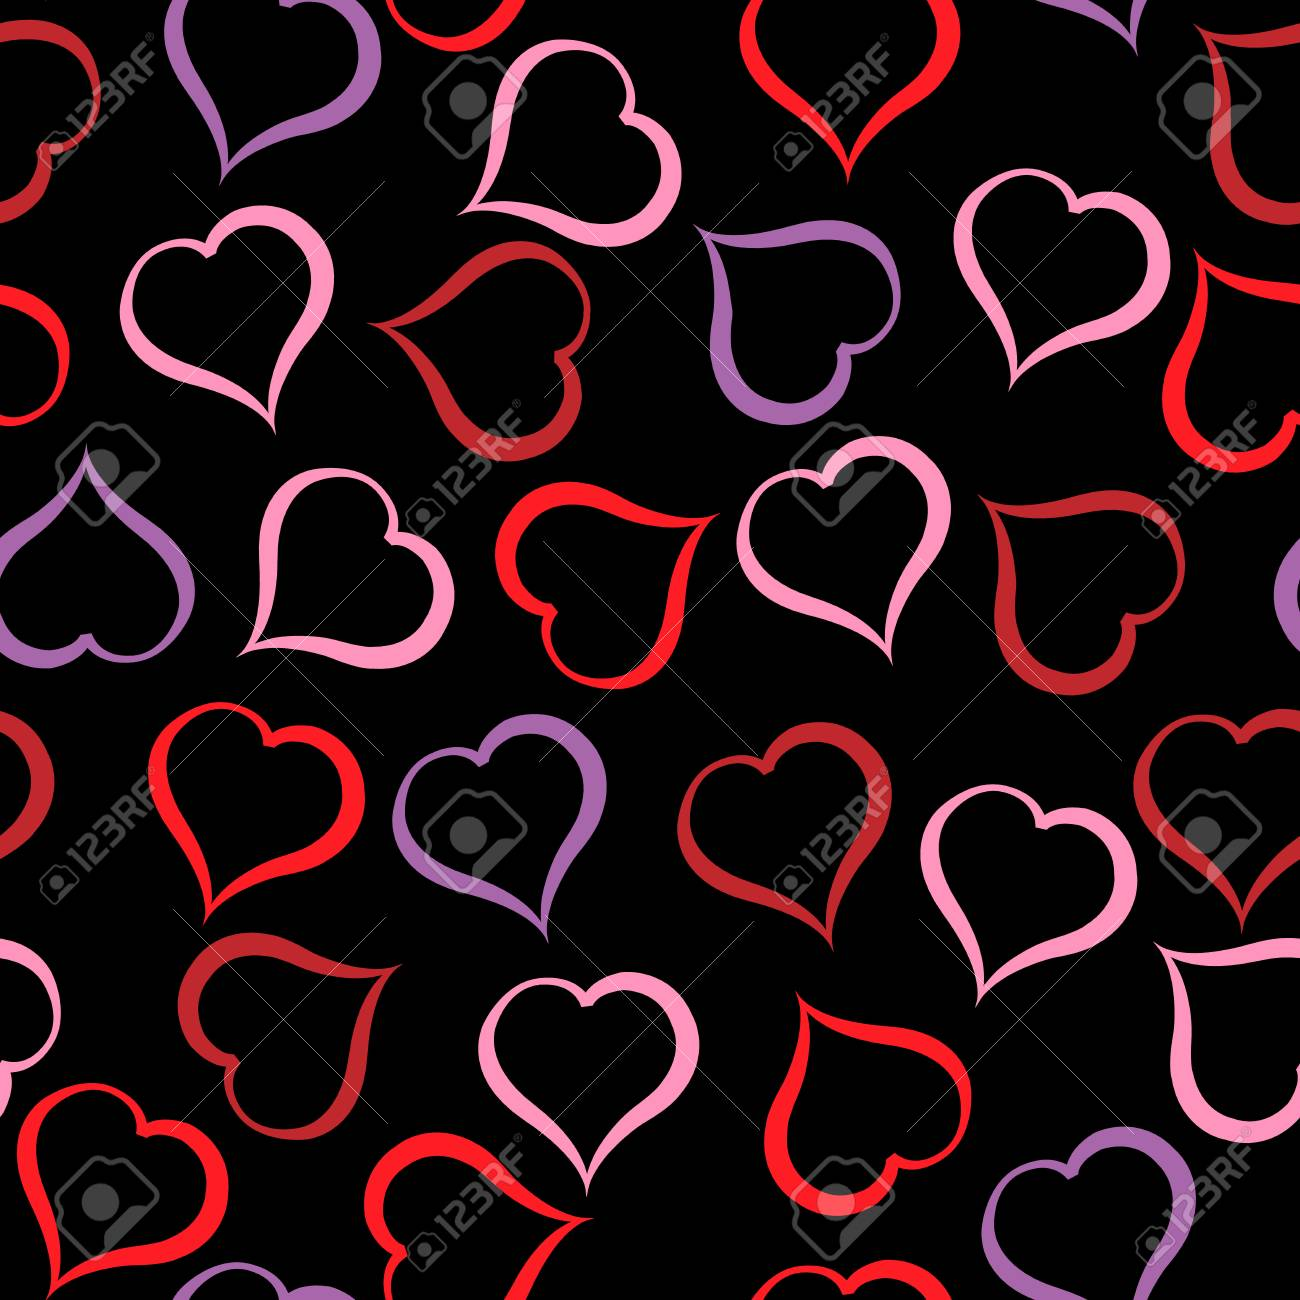 Different Colour Hearts Pattern On Black Background Royalty Free Cliparts Vectors And Stock Illustration Image 69259650